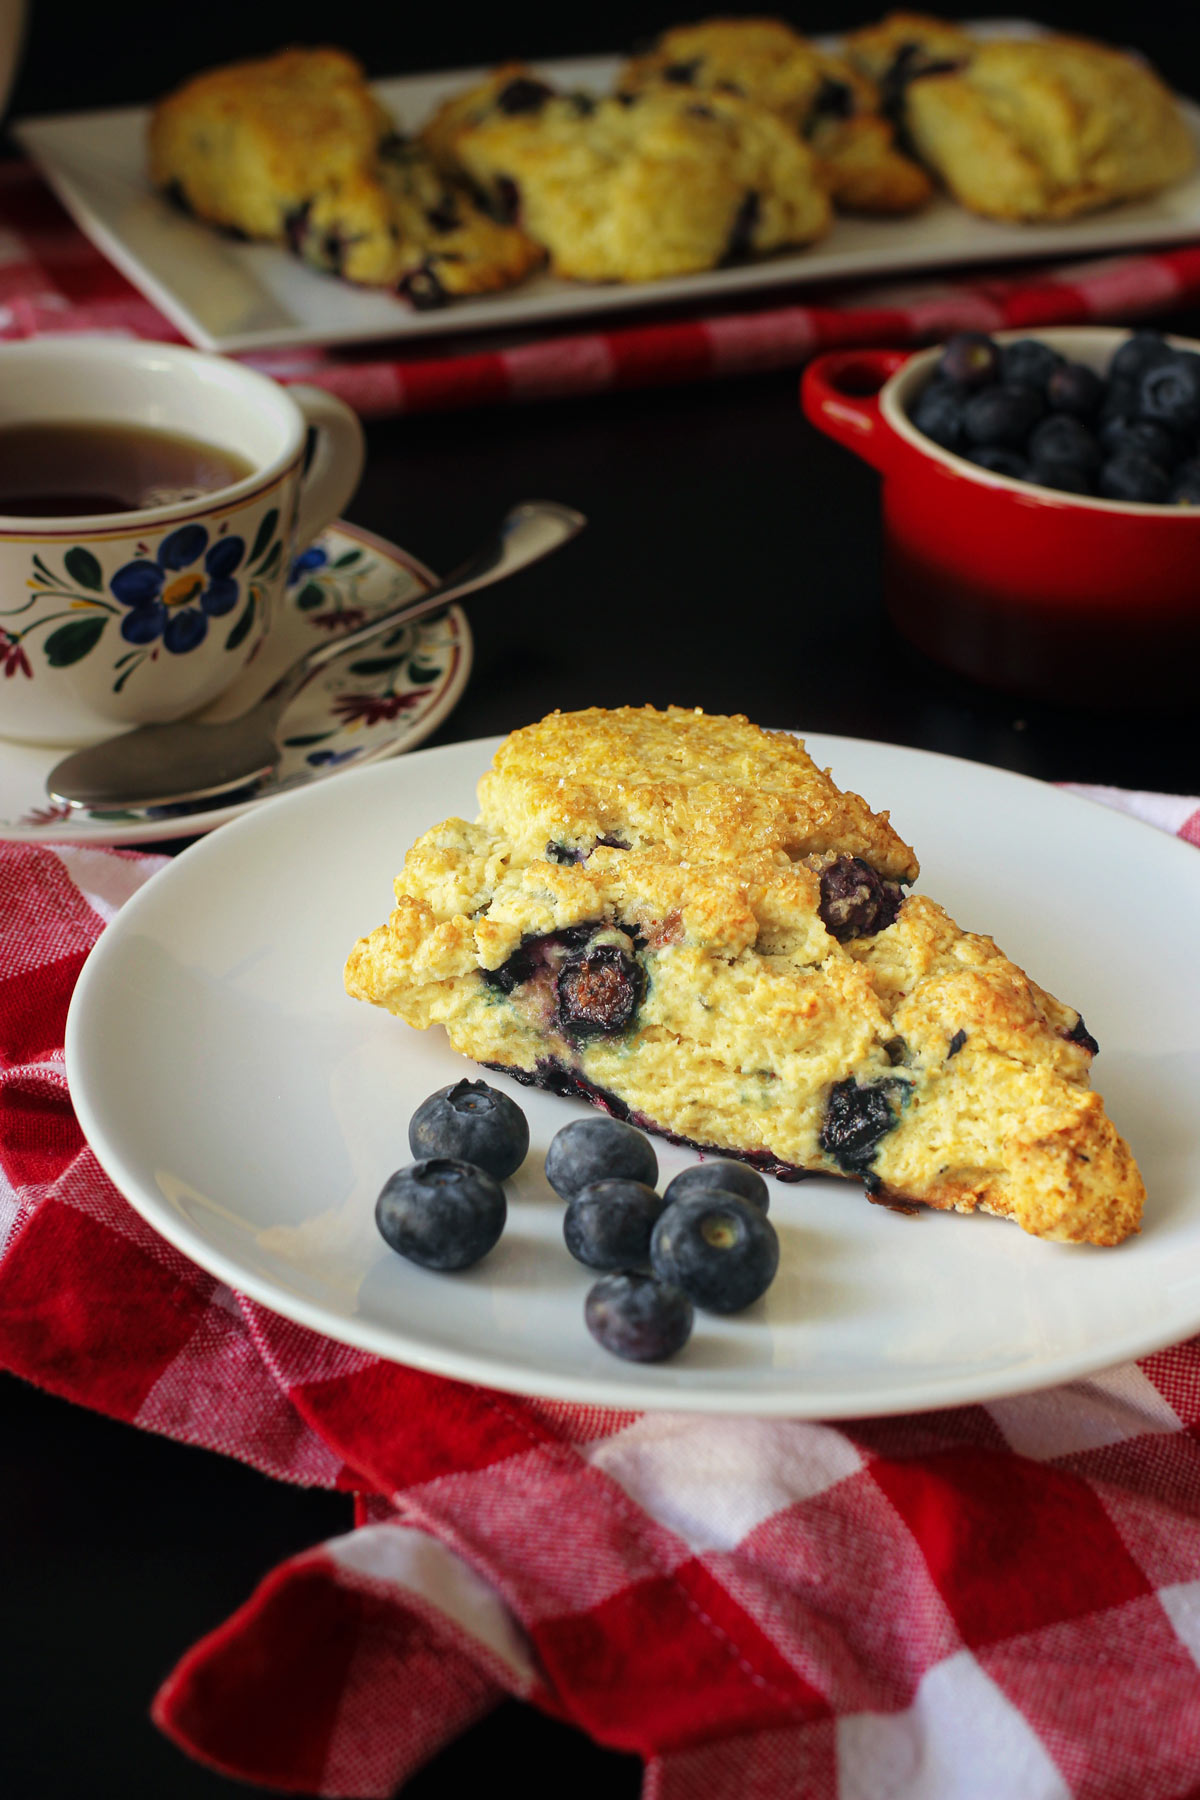 lemon blueberry scone on a plate with fresh blueberries atop a red checked napkin next to a cup of tea.